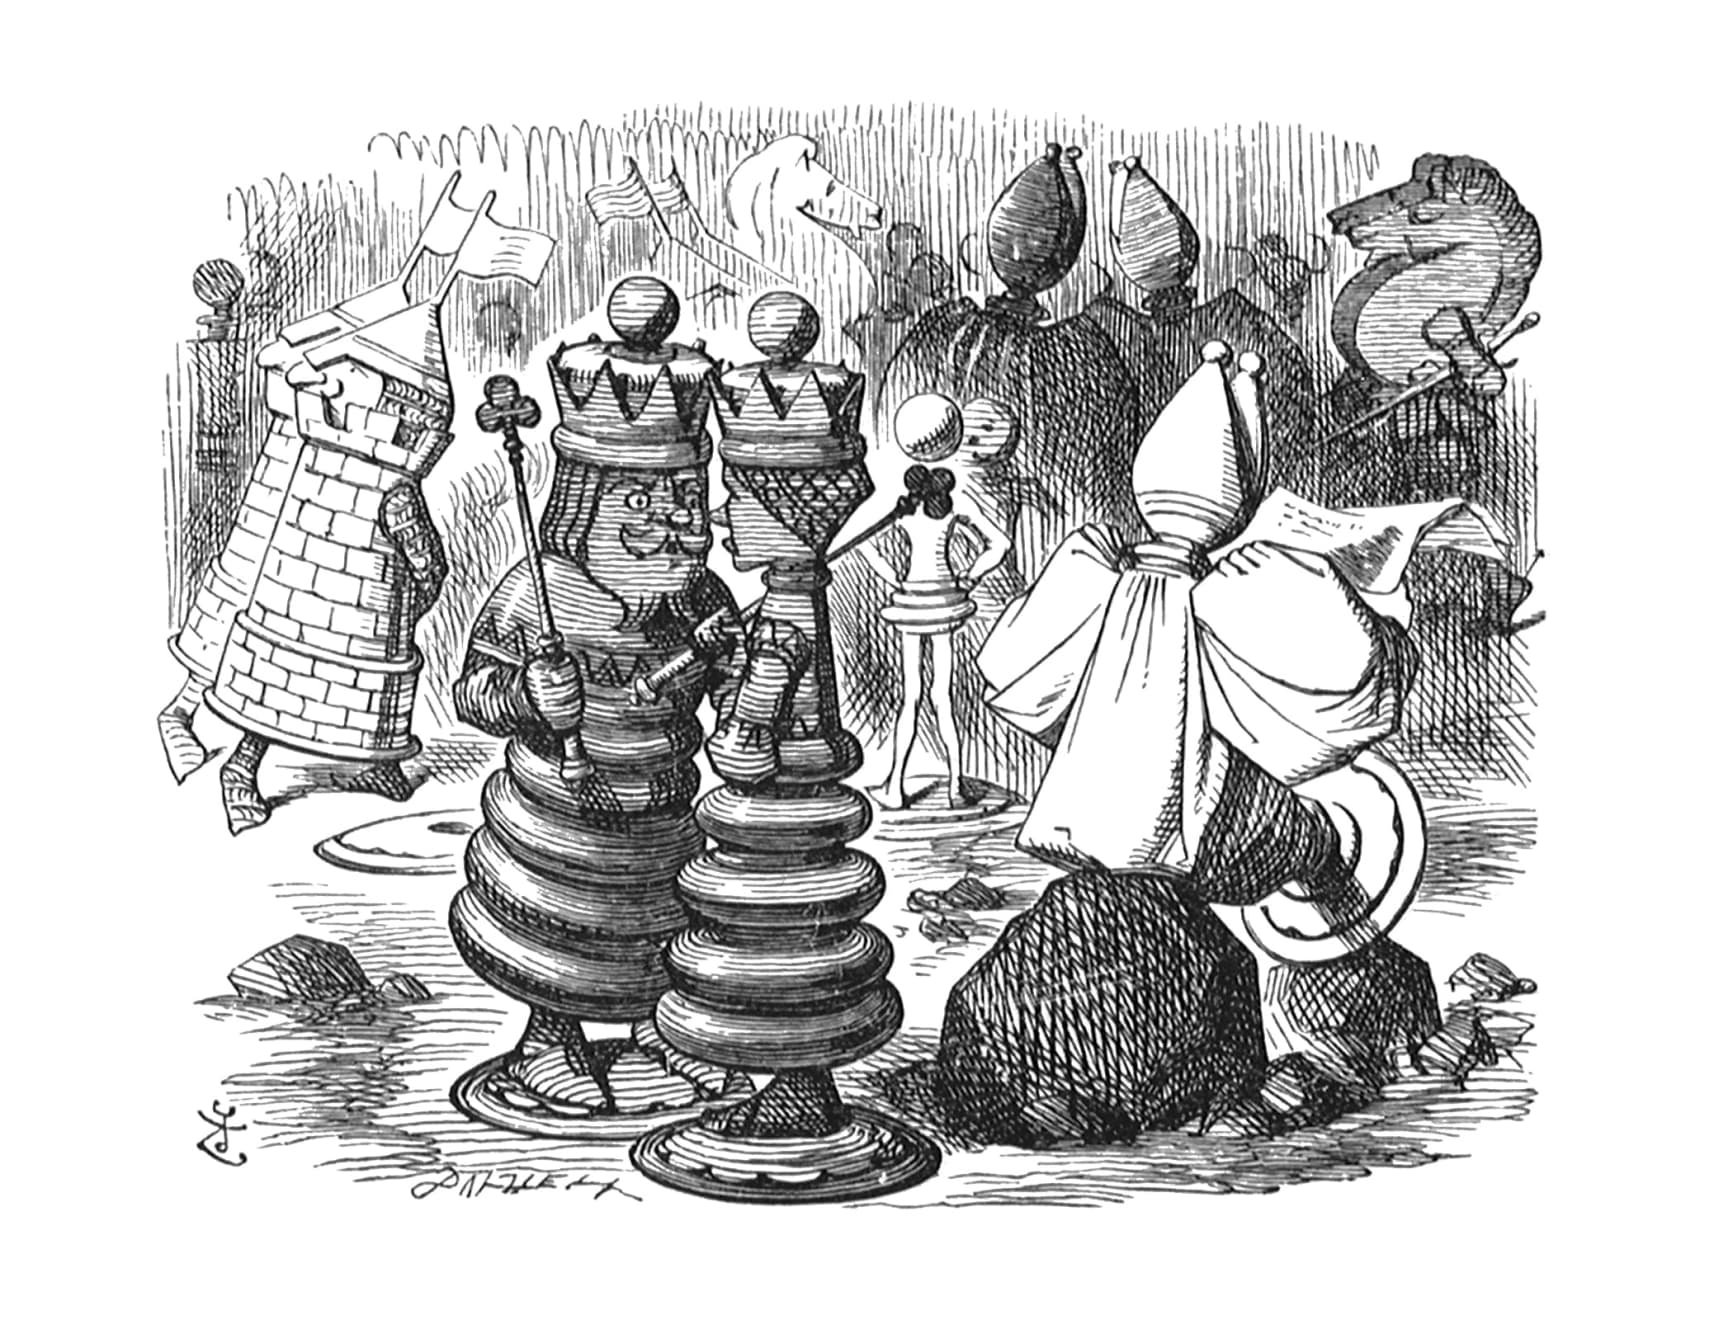 Summer Auction 2020, LOT 134 - John Tenniel - 'The Chessmen were walking about, two and two!', 1988